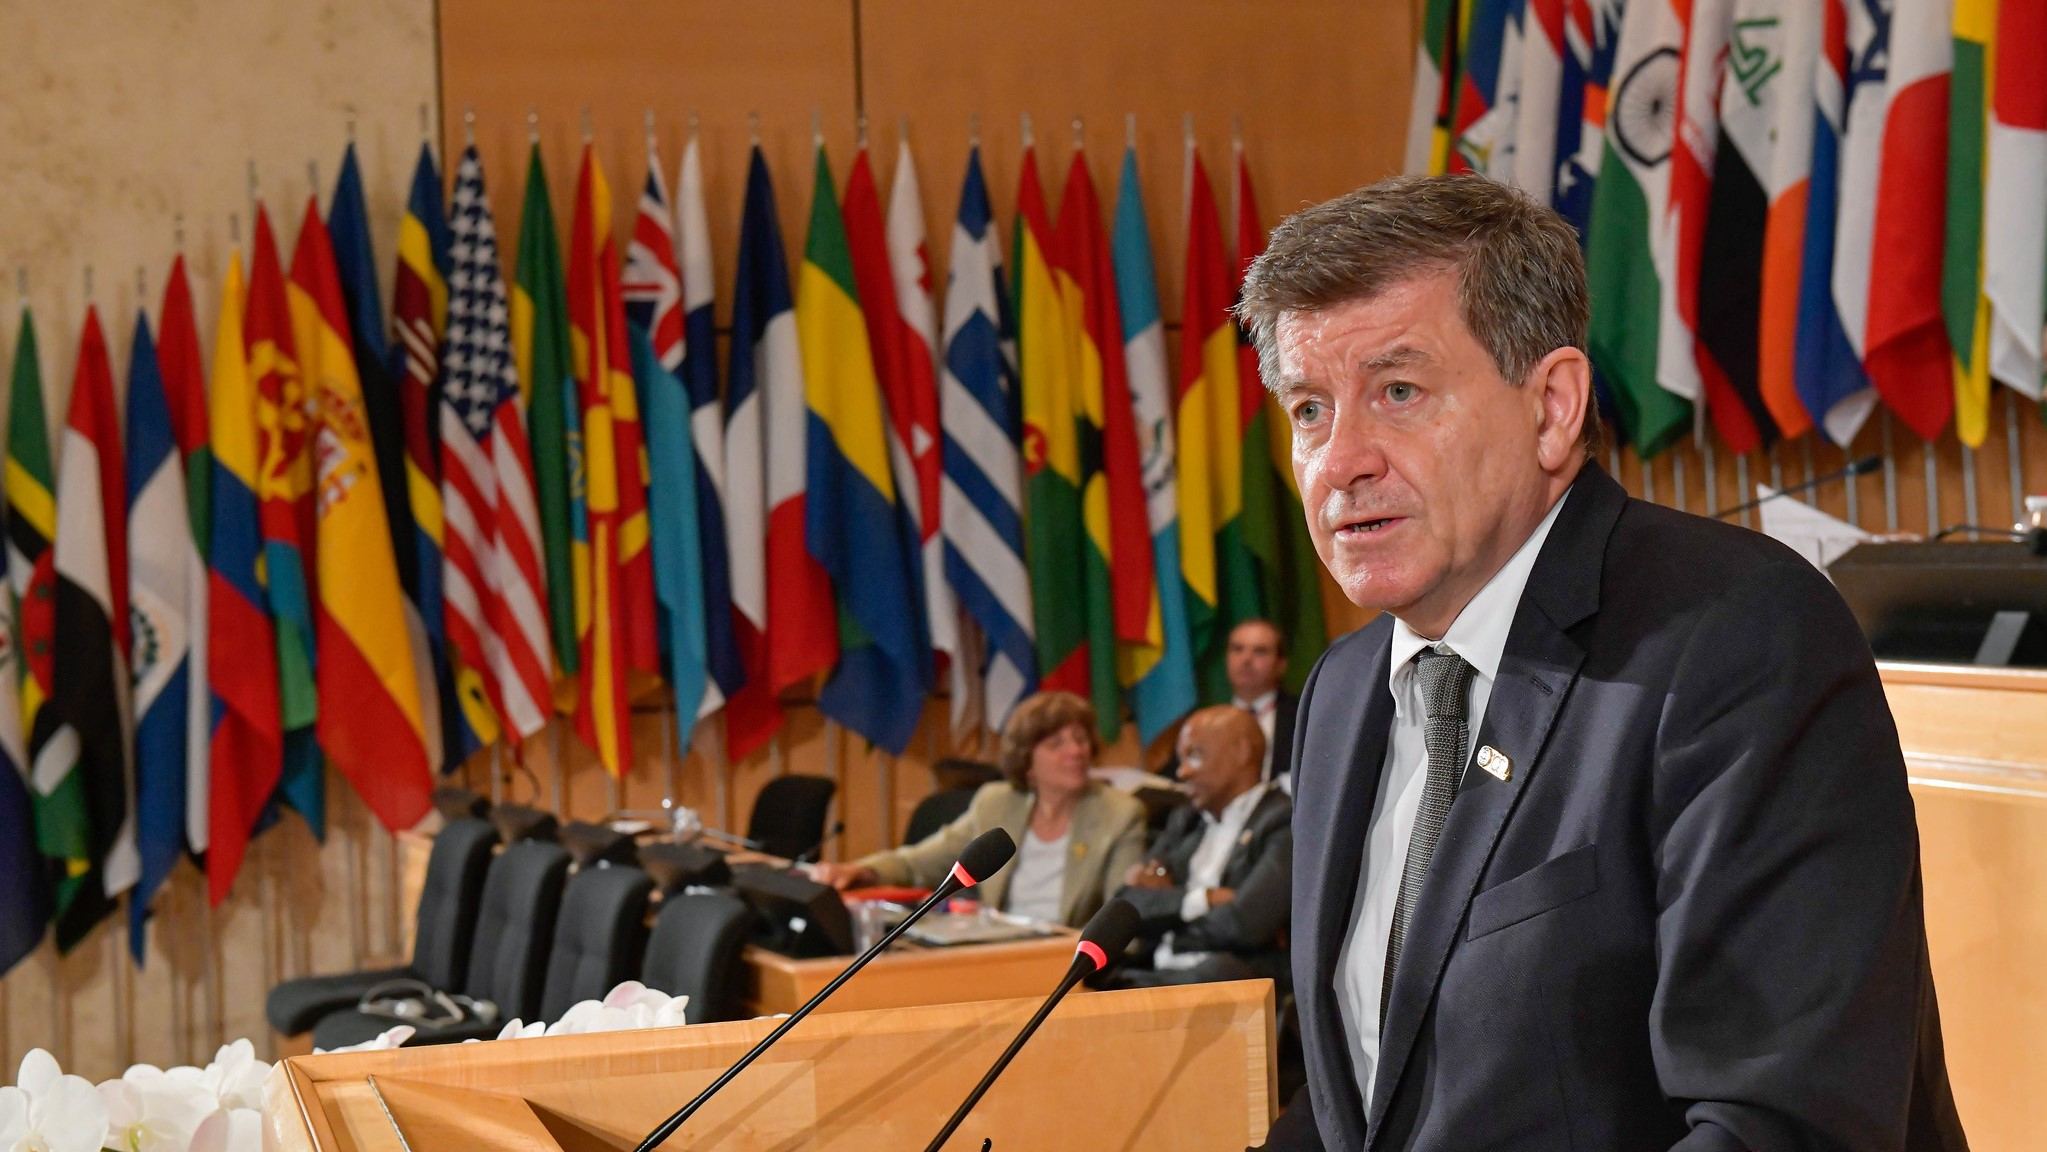 Guy Ryder: The multinational system must understand the importance of work issues